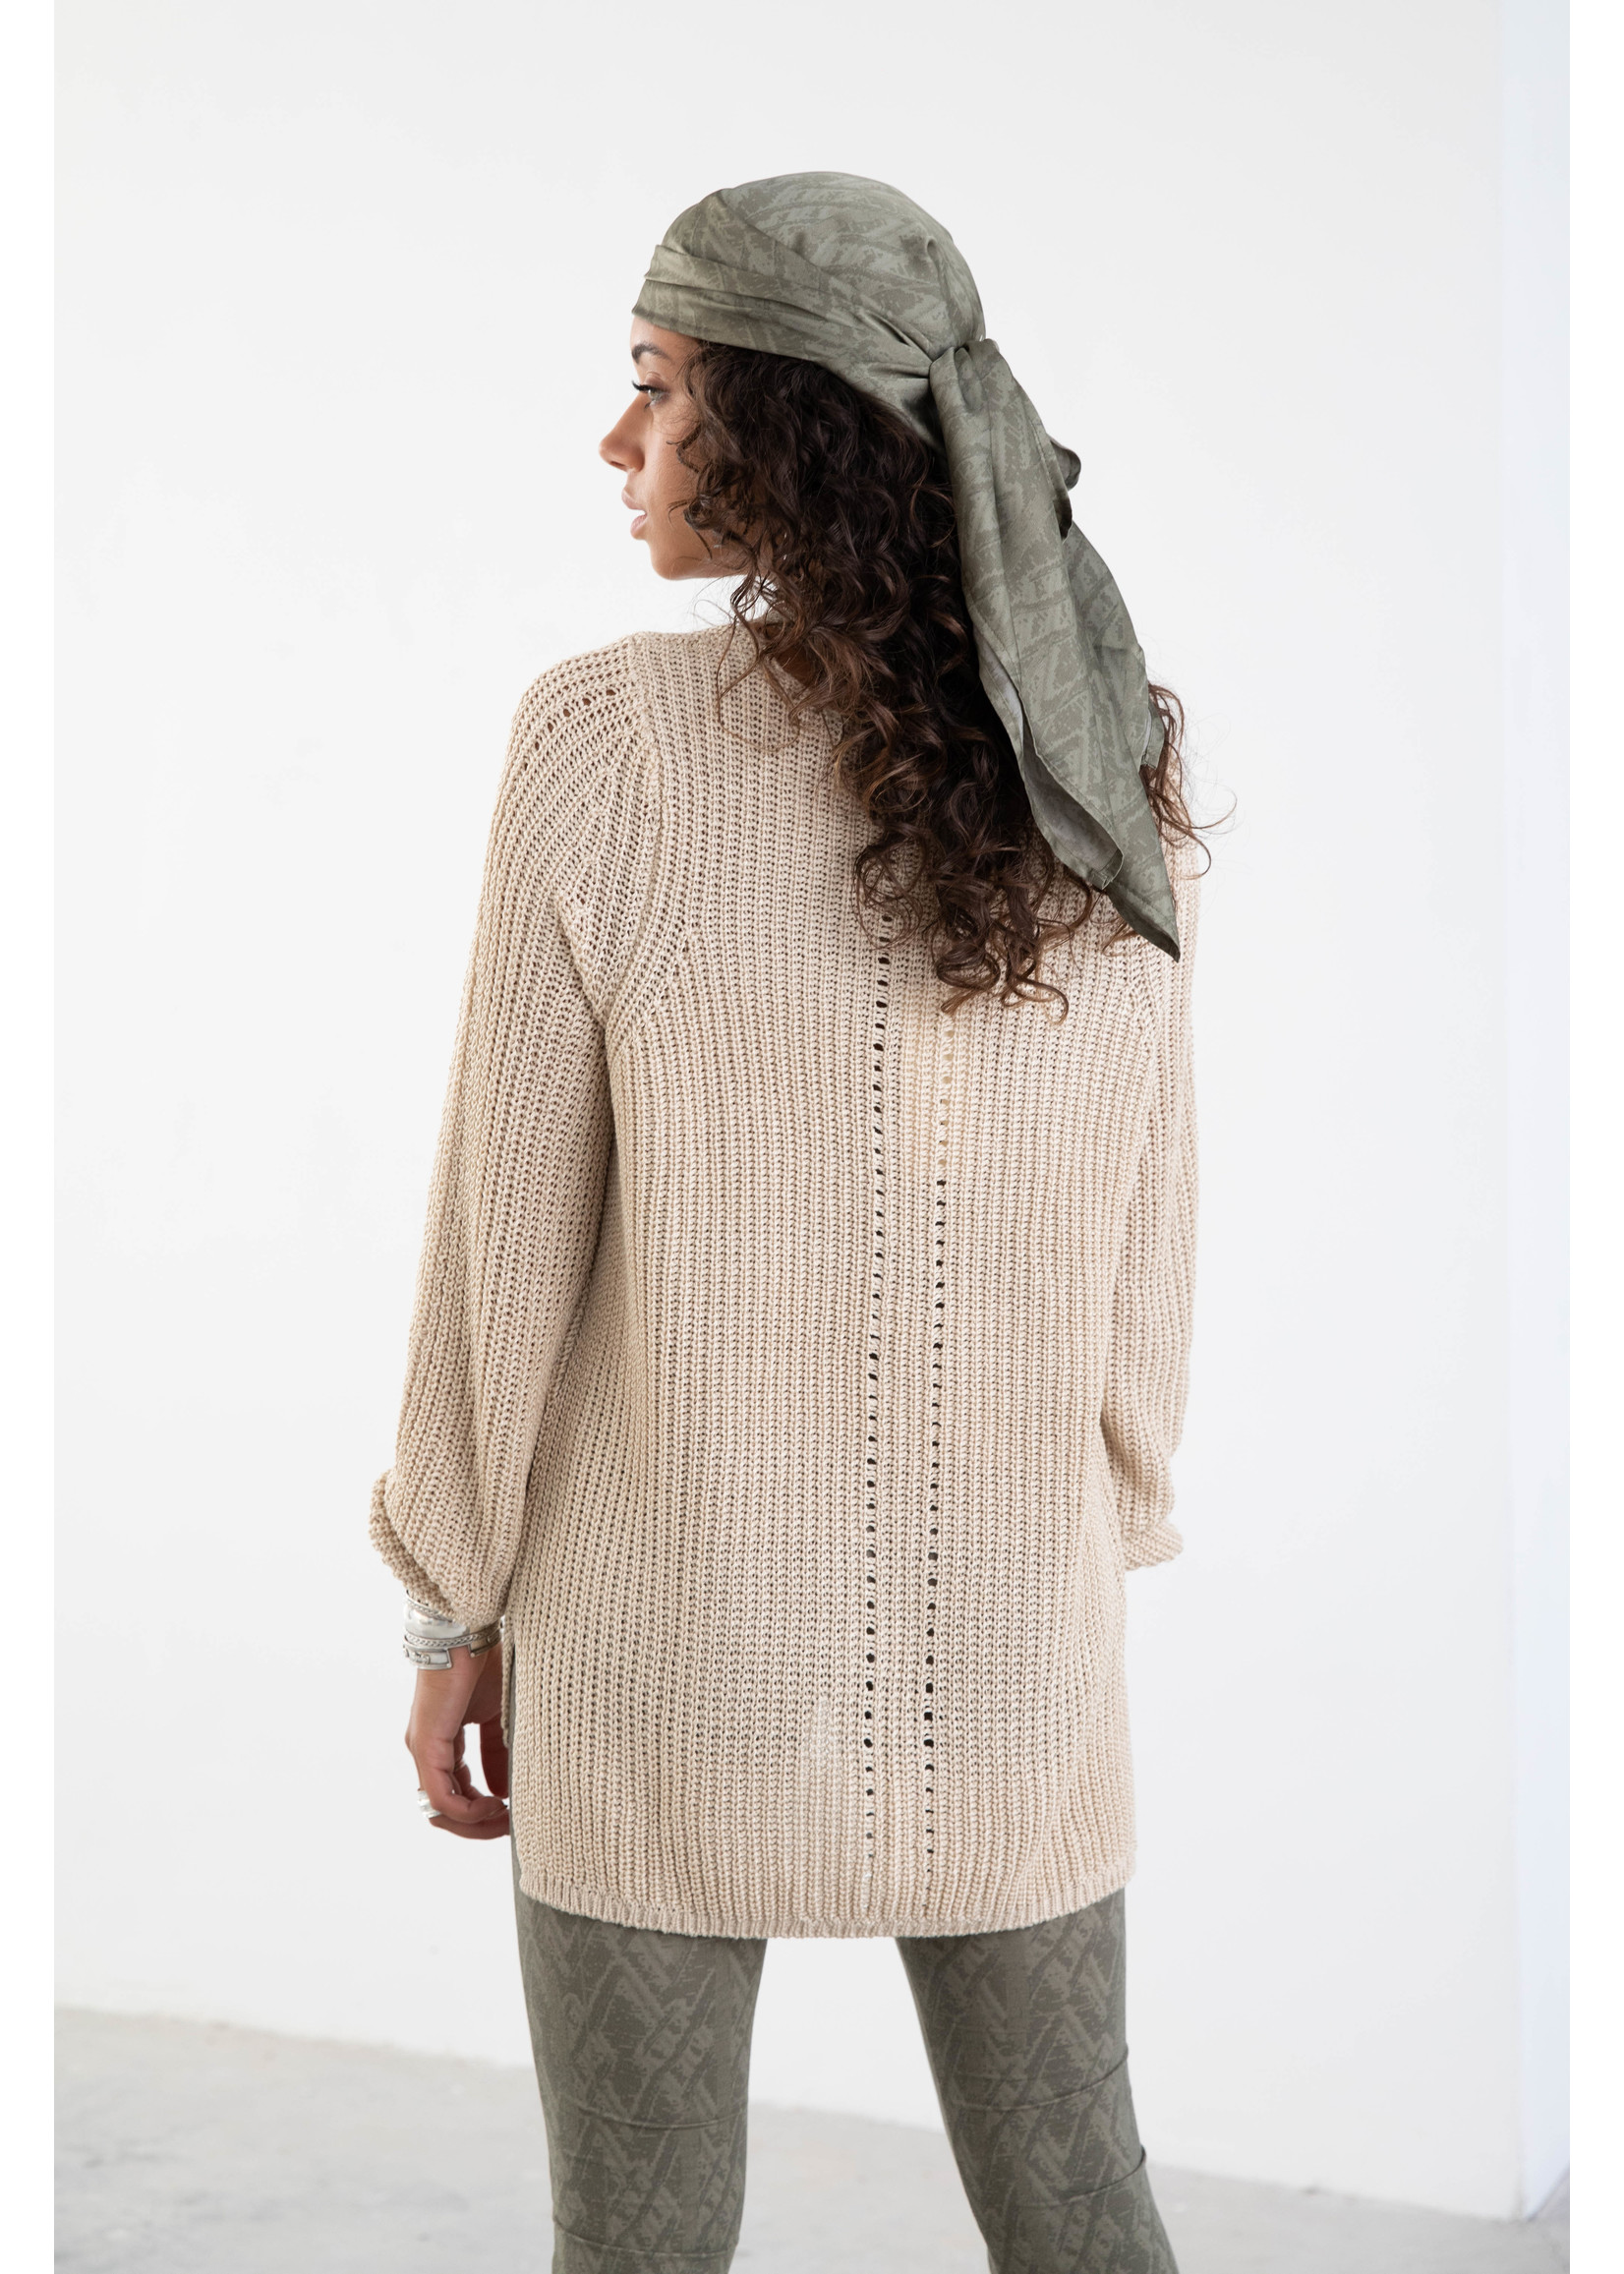 Moost Wanted Leia Knitted Sweater BEIGE